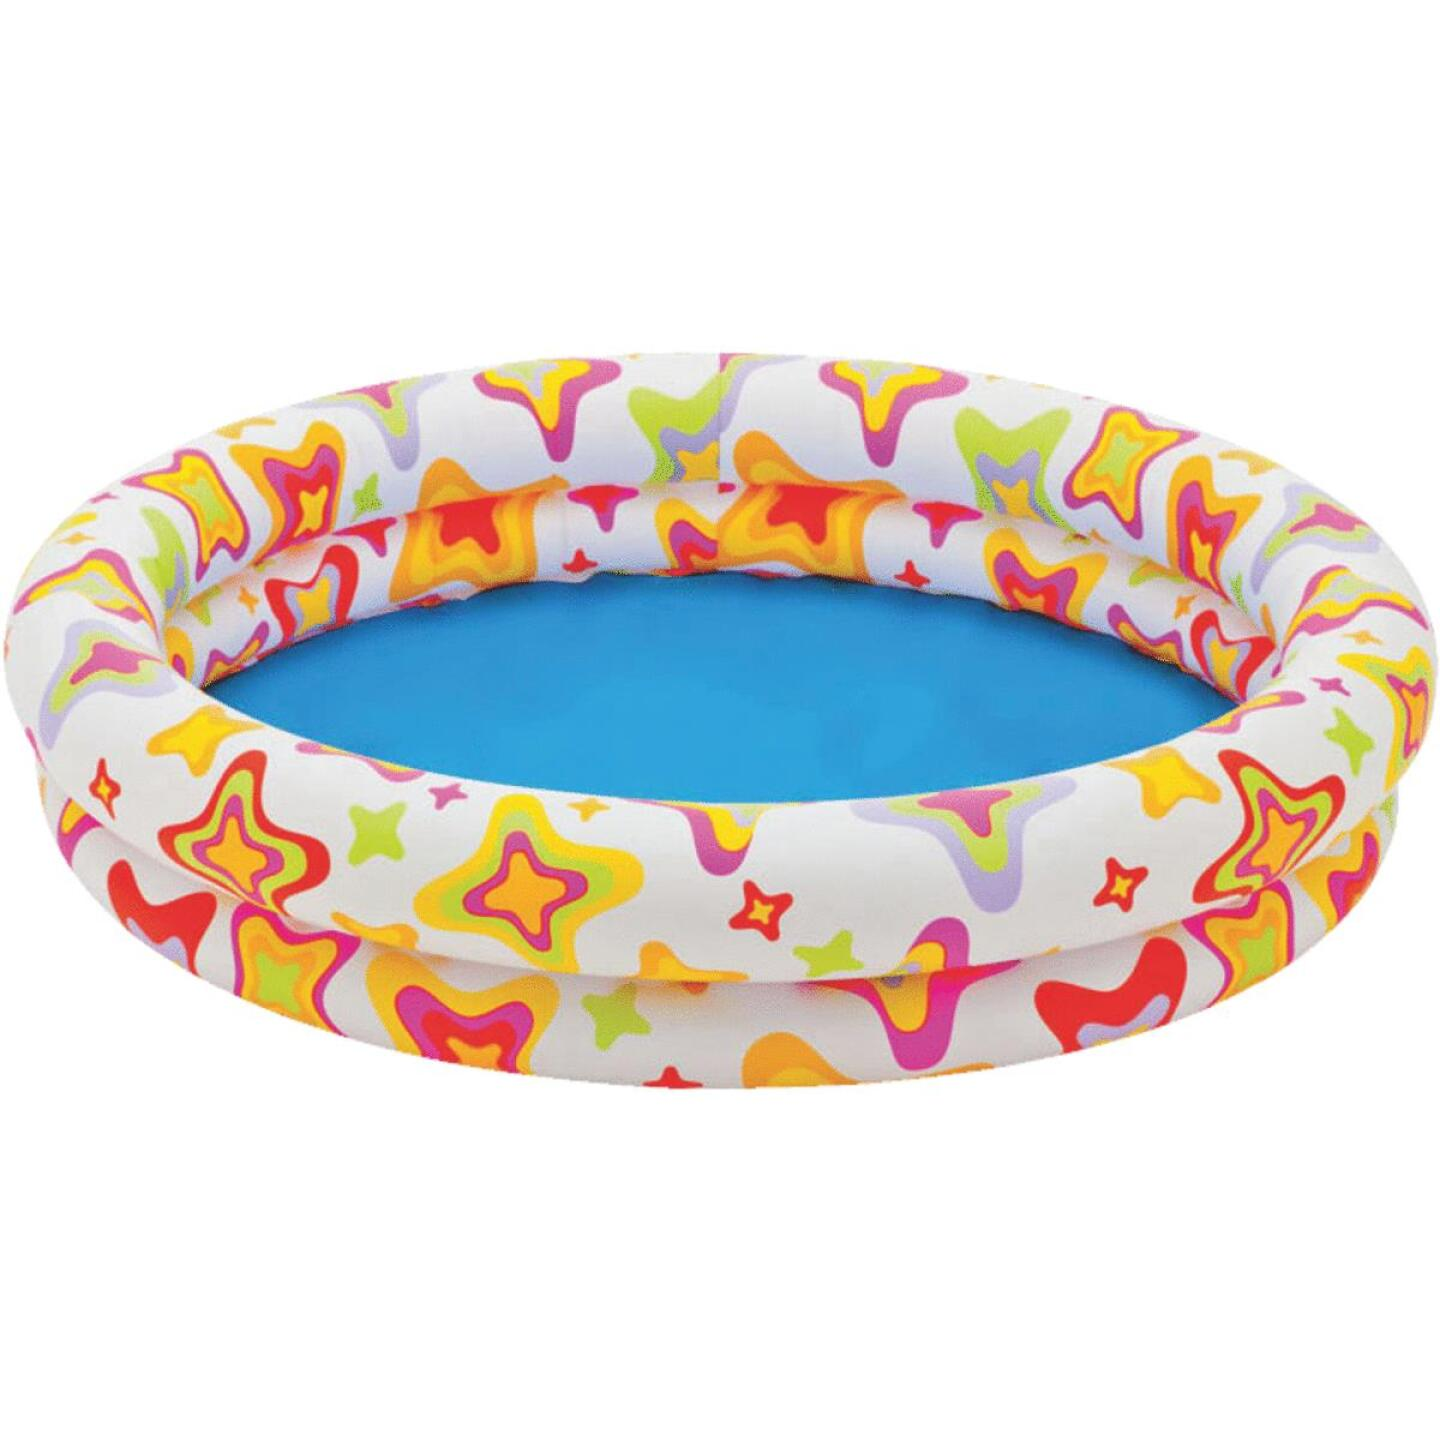 Intex 10 In. D. x 48 In. Dia. Multi-Colored Vinyl Inflatable Circle Fun Pool Image 1